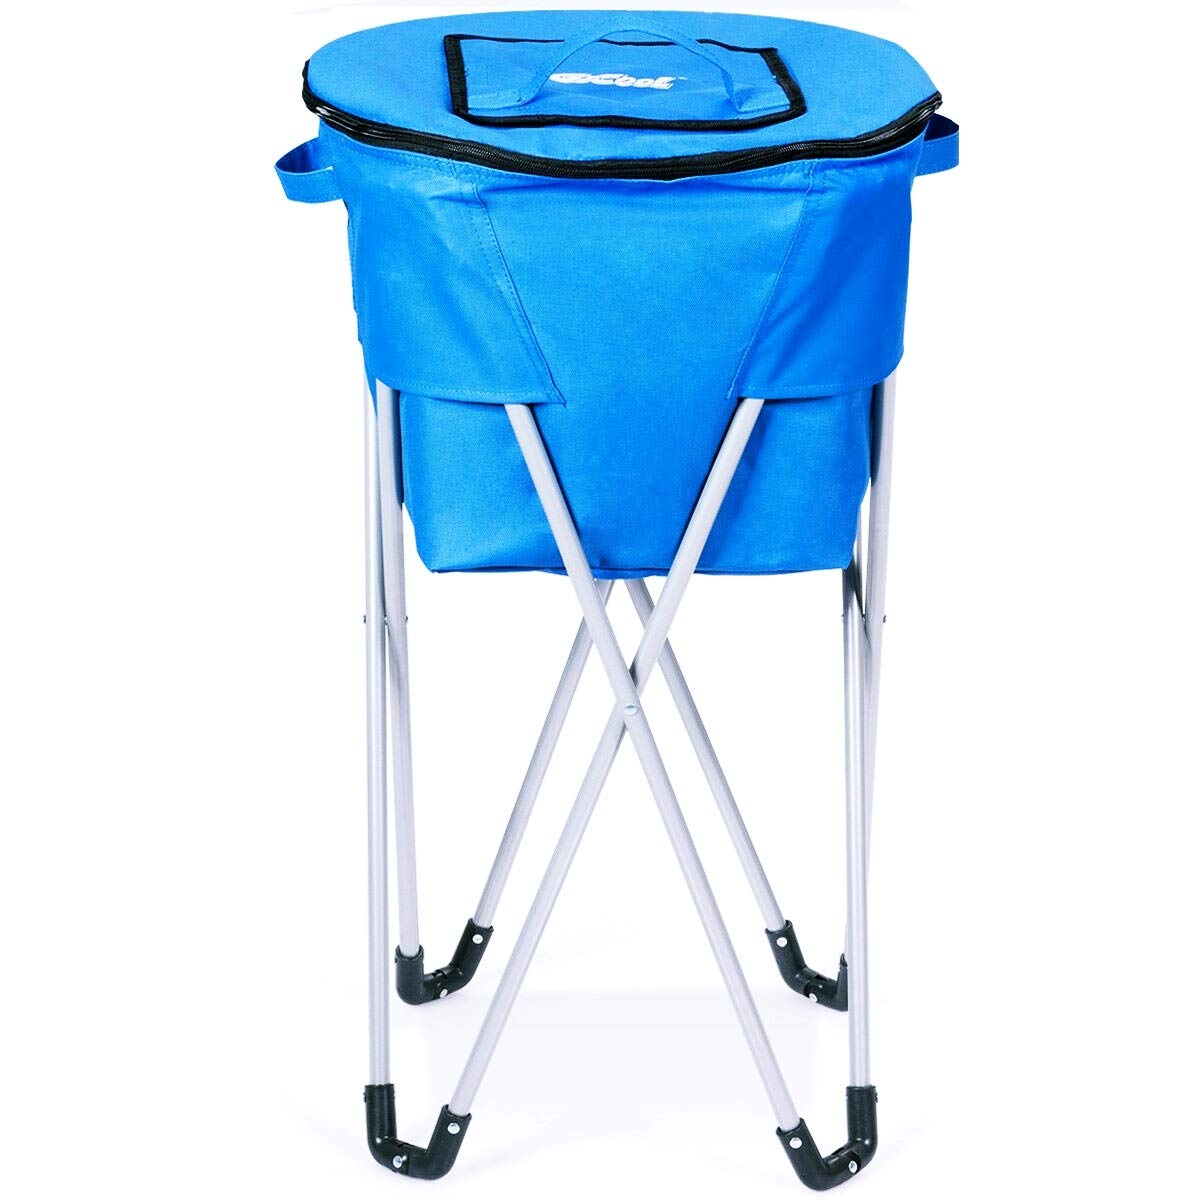 Lucky-gift - Portable Insulated Tub Party Picnic Cooler with Folding Stand - Food Serving Bar Salad Lunch Bag Colors Travel Plus Camping Table - Cooler Picnic Outdoor New Party Ice Insulated Inflatab by Lucky-gift